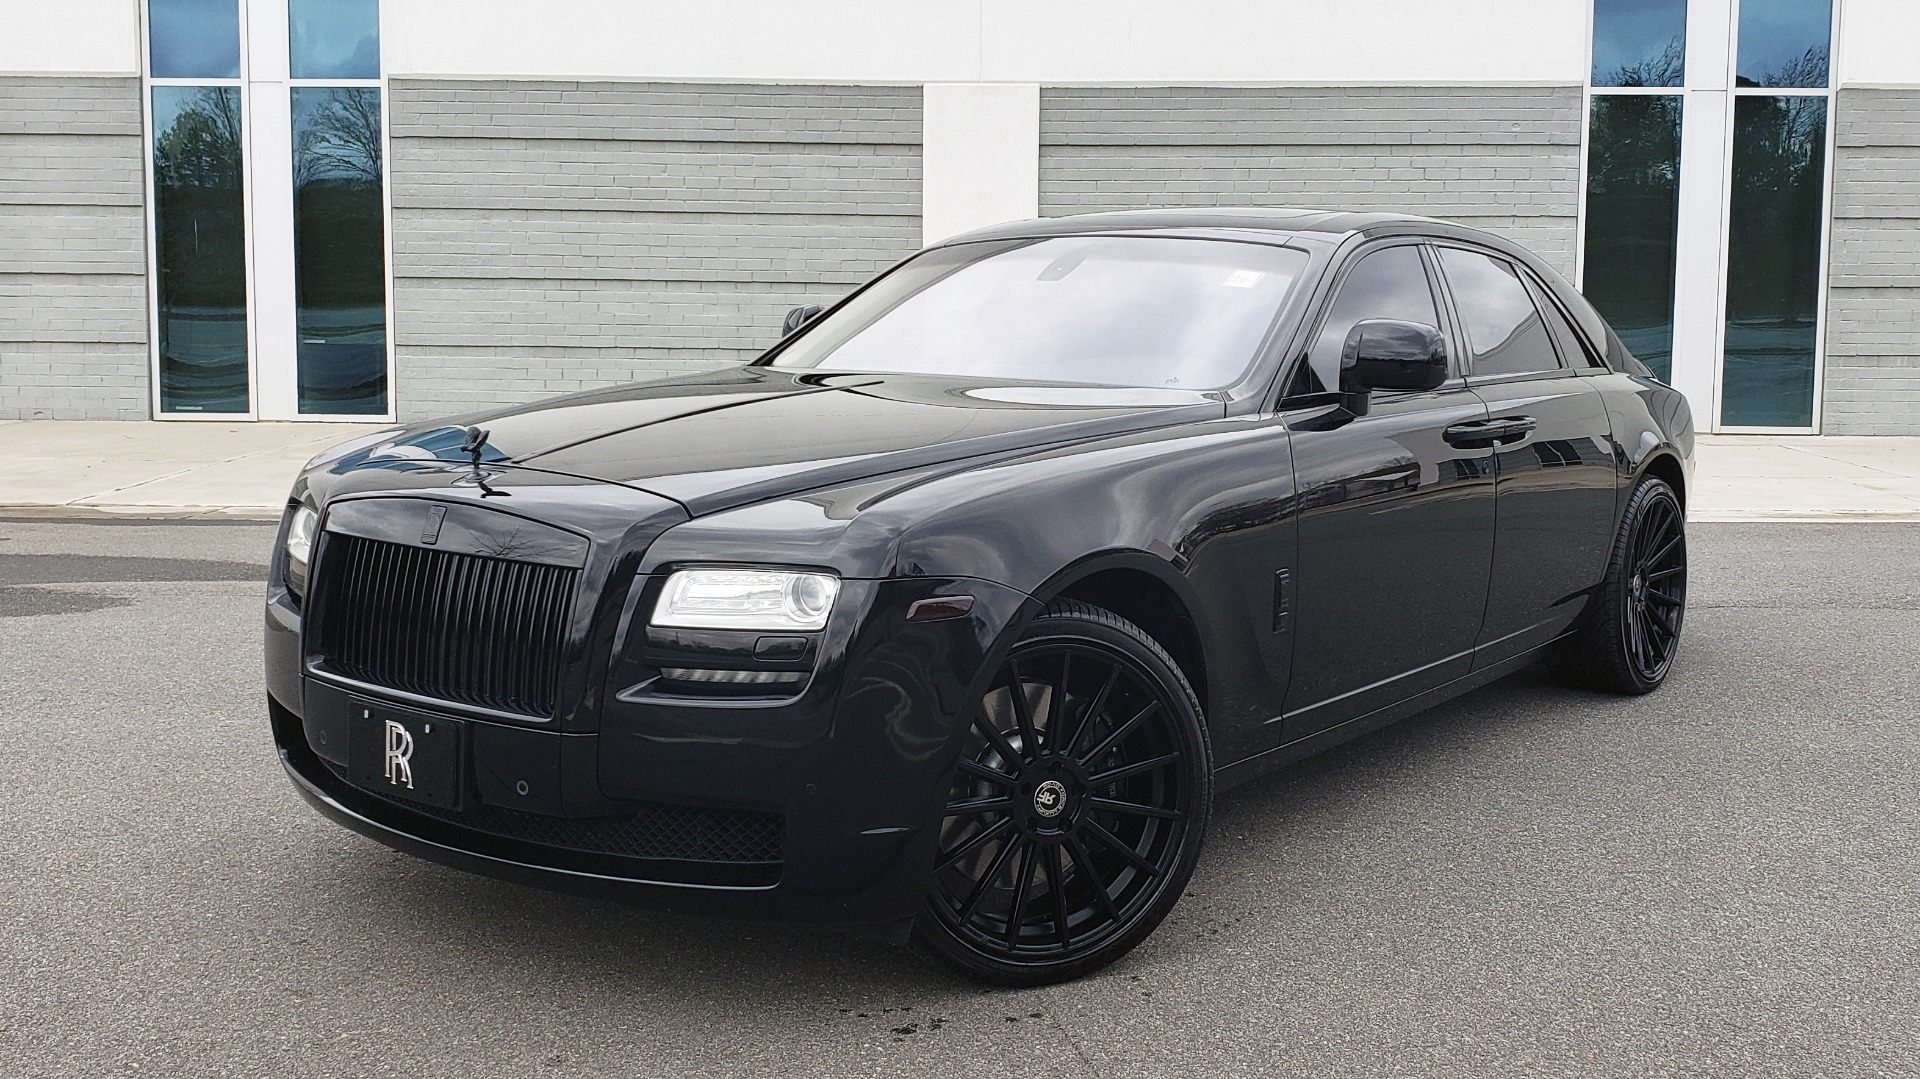 Used 2010 Rolls-Royce GHOST 6.6L TURBO V12 (563HP) / NAV / SUNROOF / SUICIDE DOORS for sale $89,000 at Formula Imports in Charlotte NC 28227 1